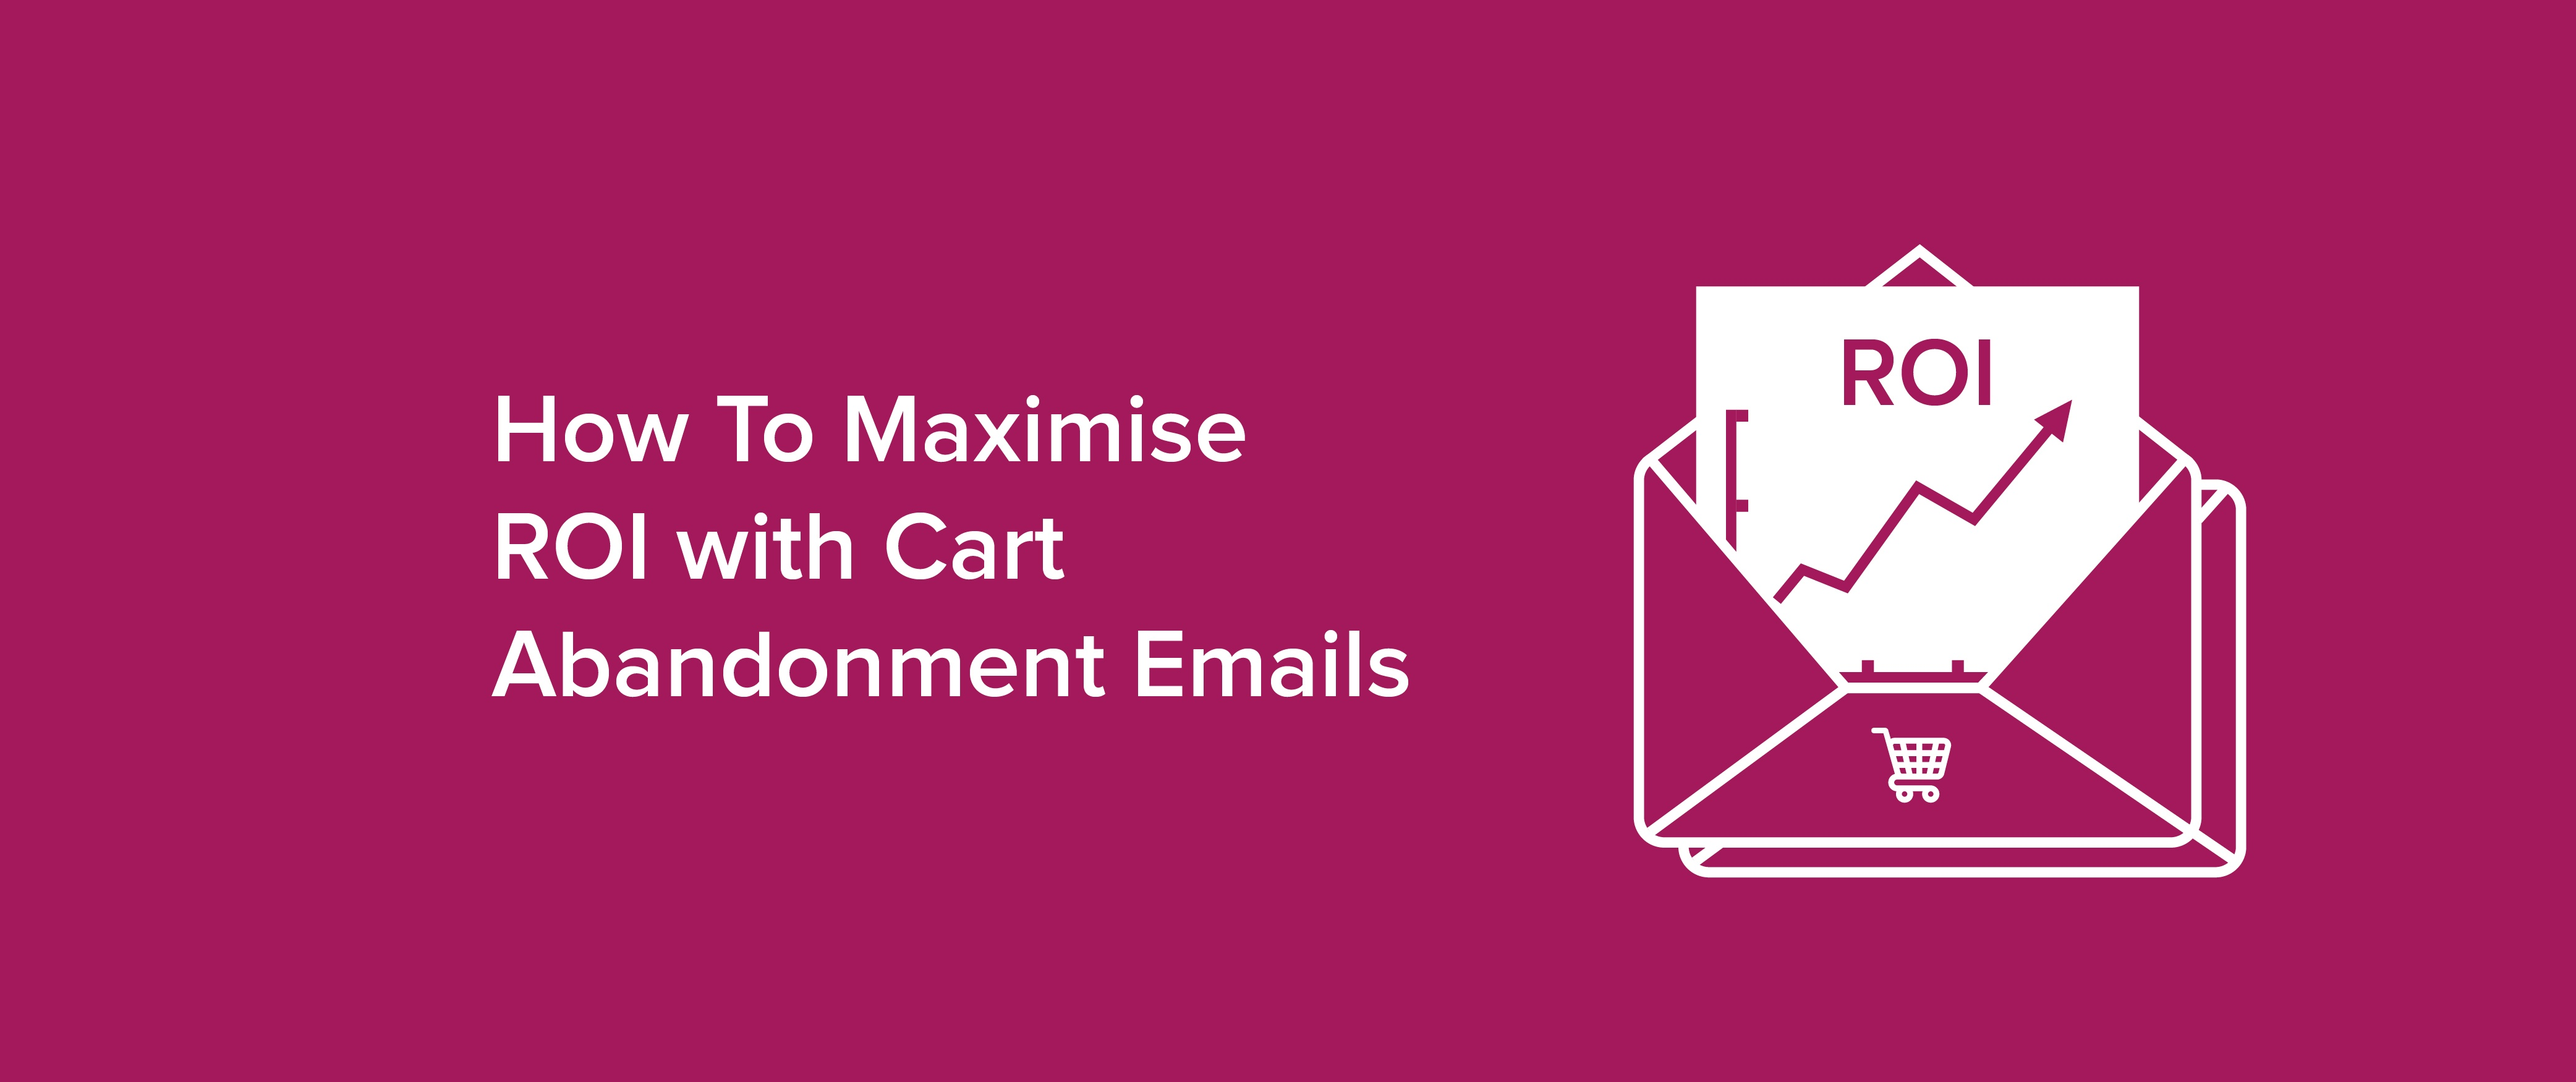 How to Maximise ROI with Cart Abandonment Emails